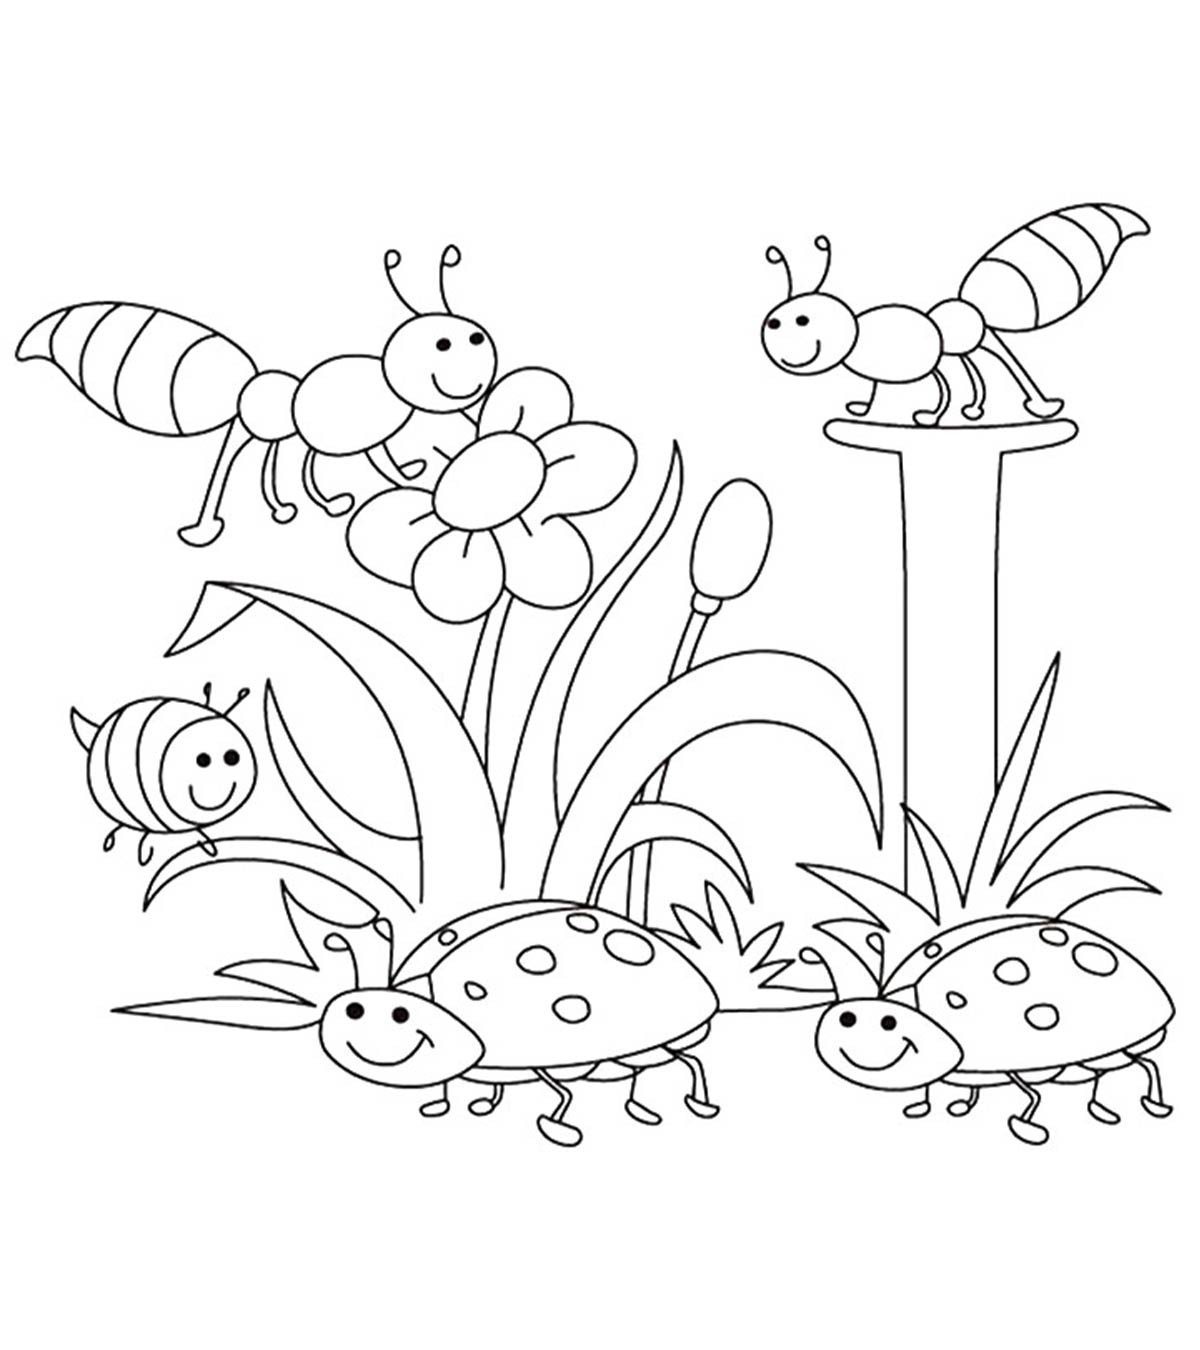 coloring pictures for grade r grade r cover page colouring page calendar inspiration for pictures coloring grade r